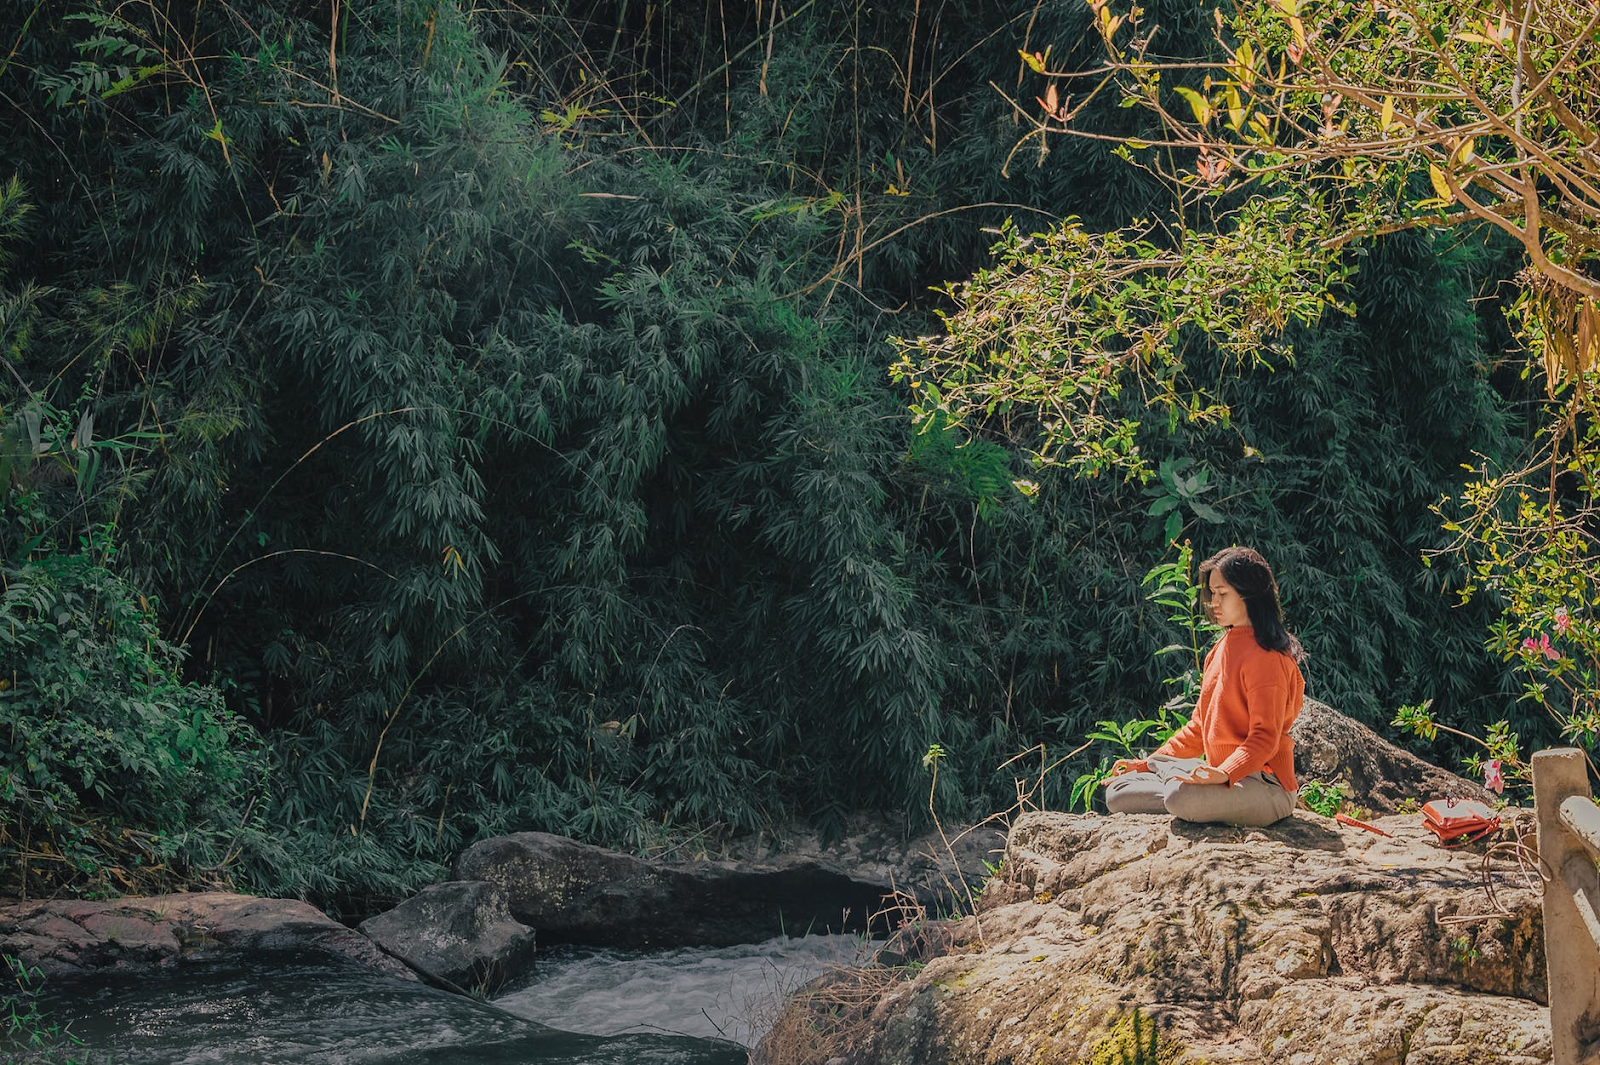 A woman meditating in nature